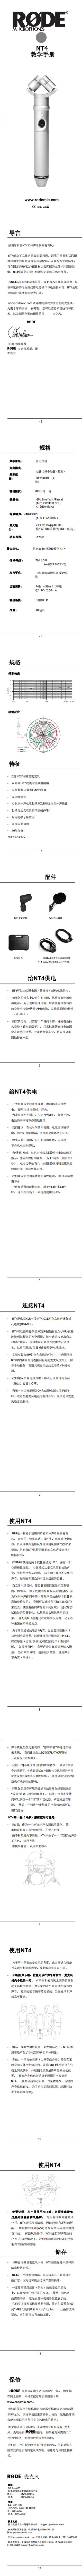 NT4_product_manual_1_12_translate_Chinese_0.png